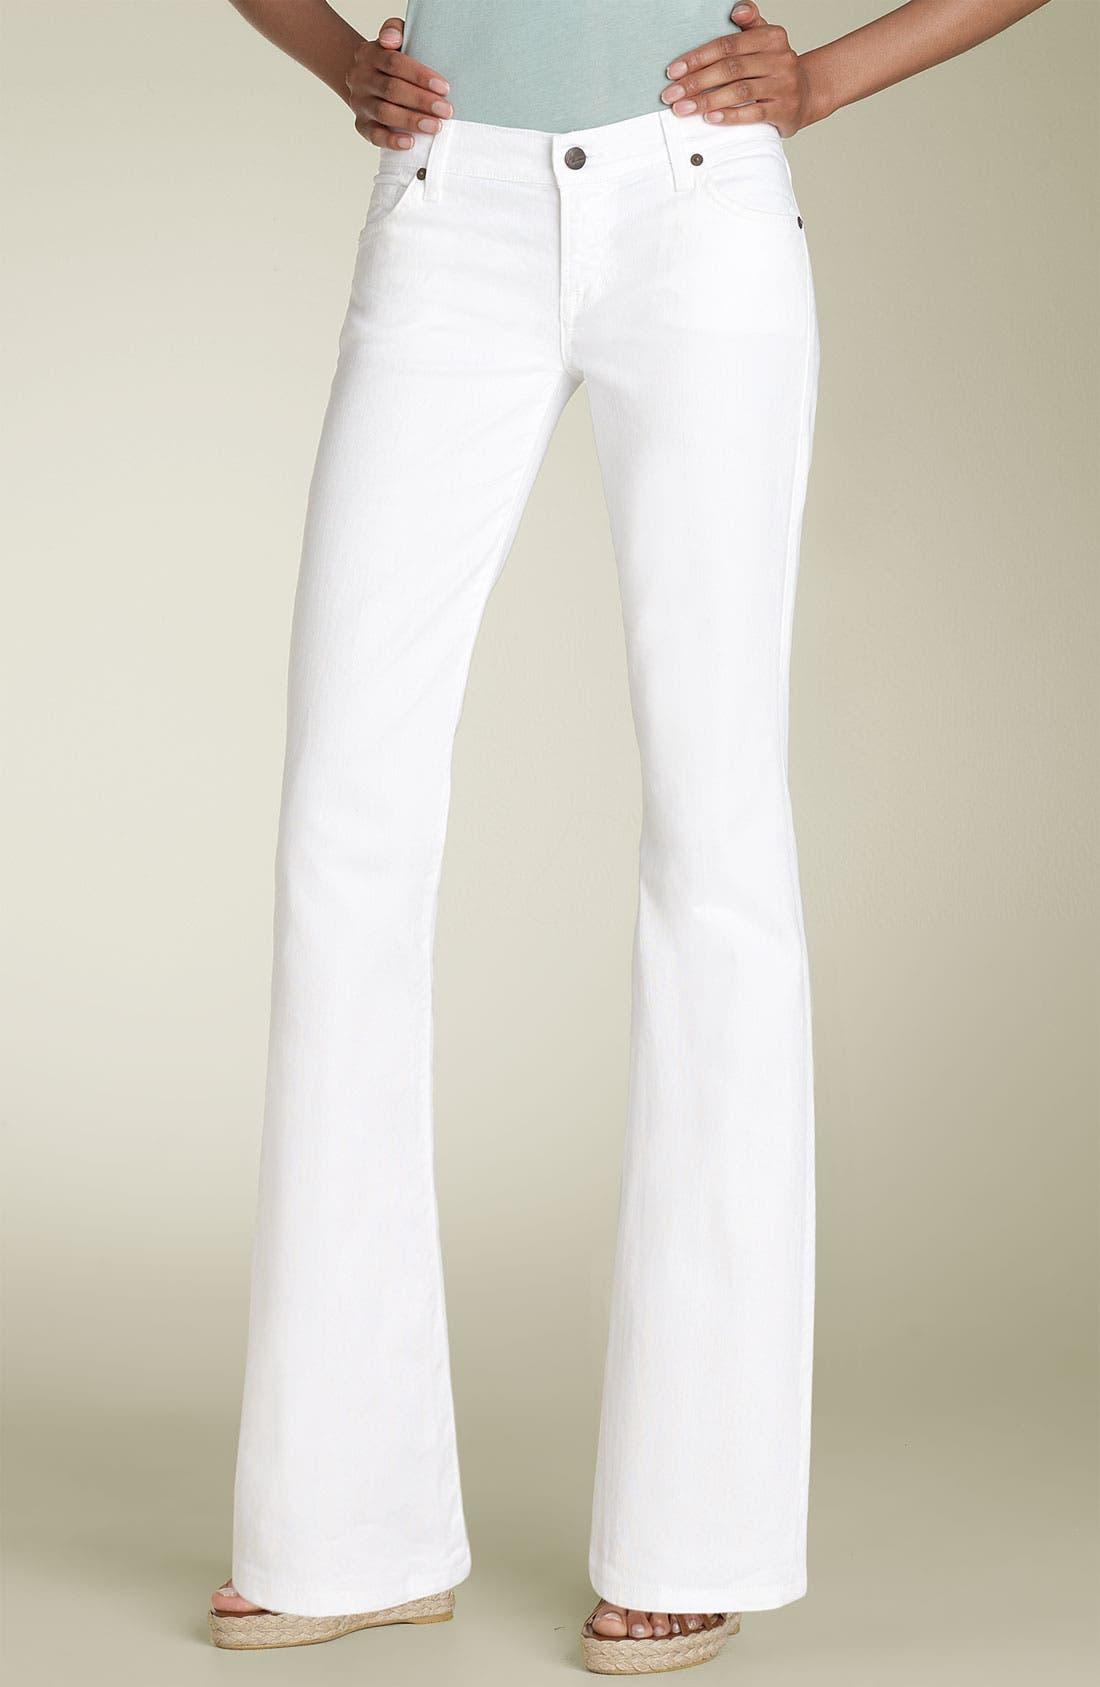 Alternate Image 1 Selected - Citizens of Humanity 'Dita' Bootcut Stretch Jeans (Santorini White) (Petite)